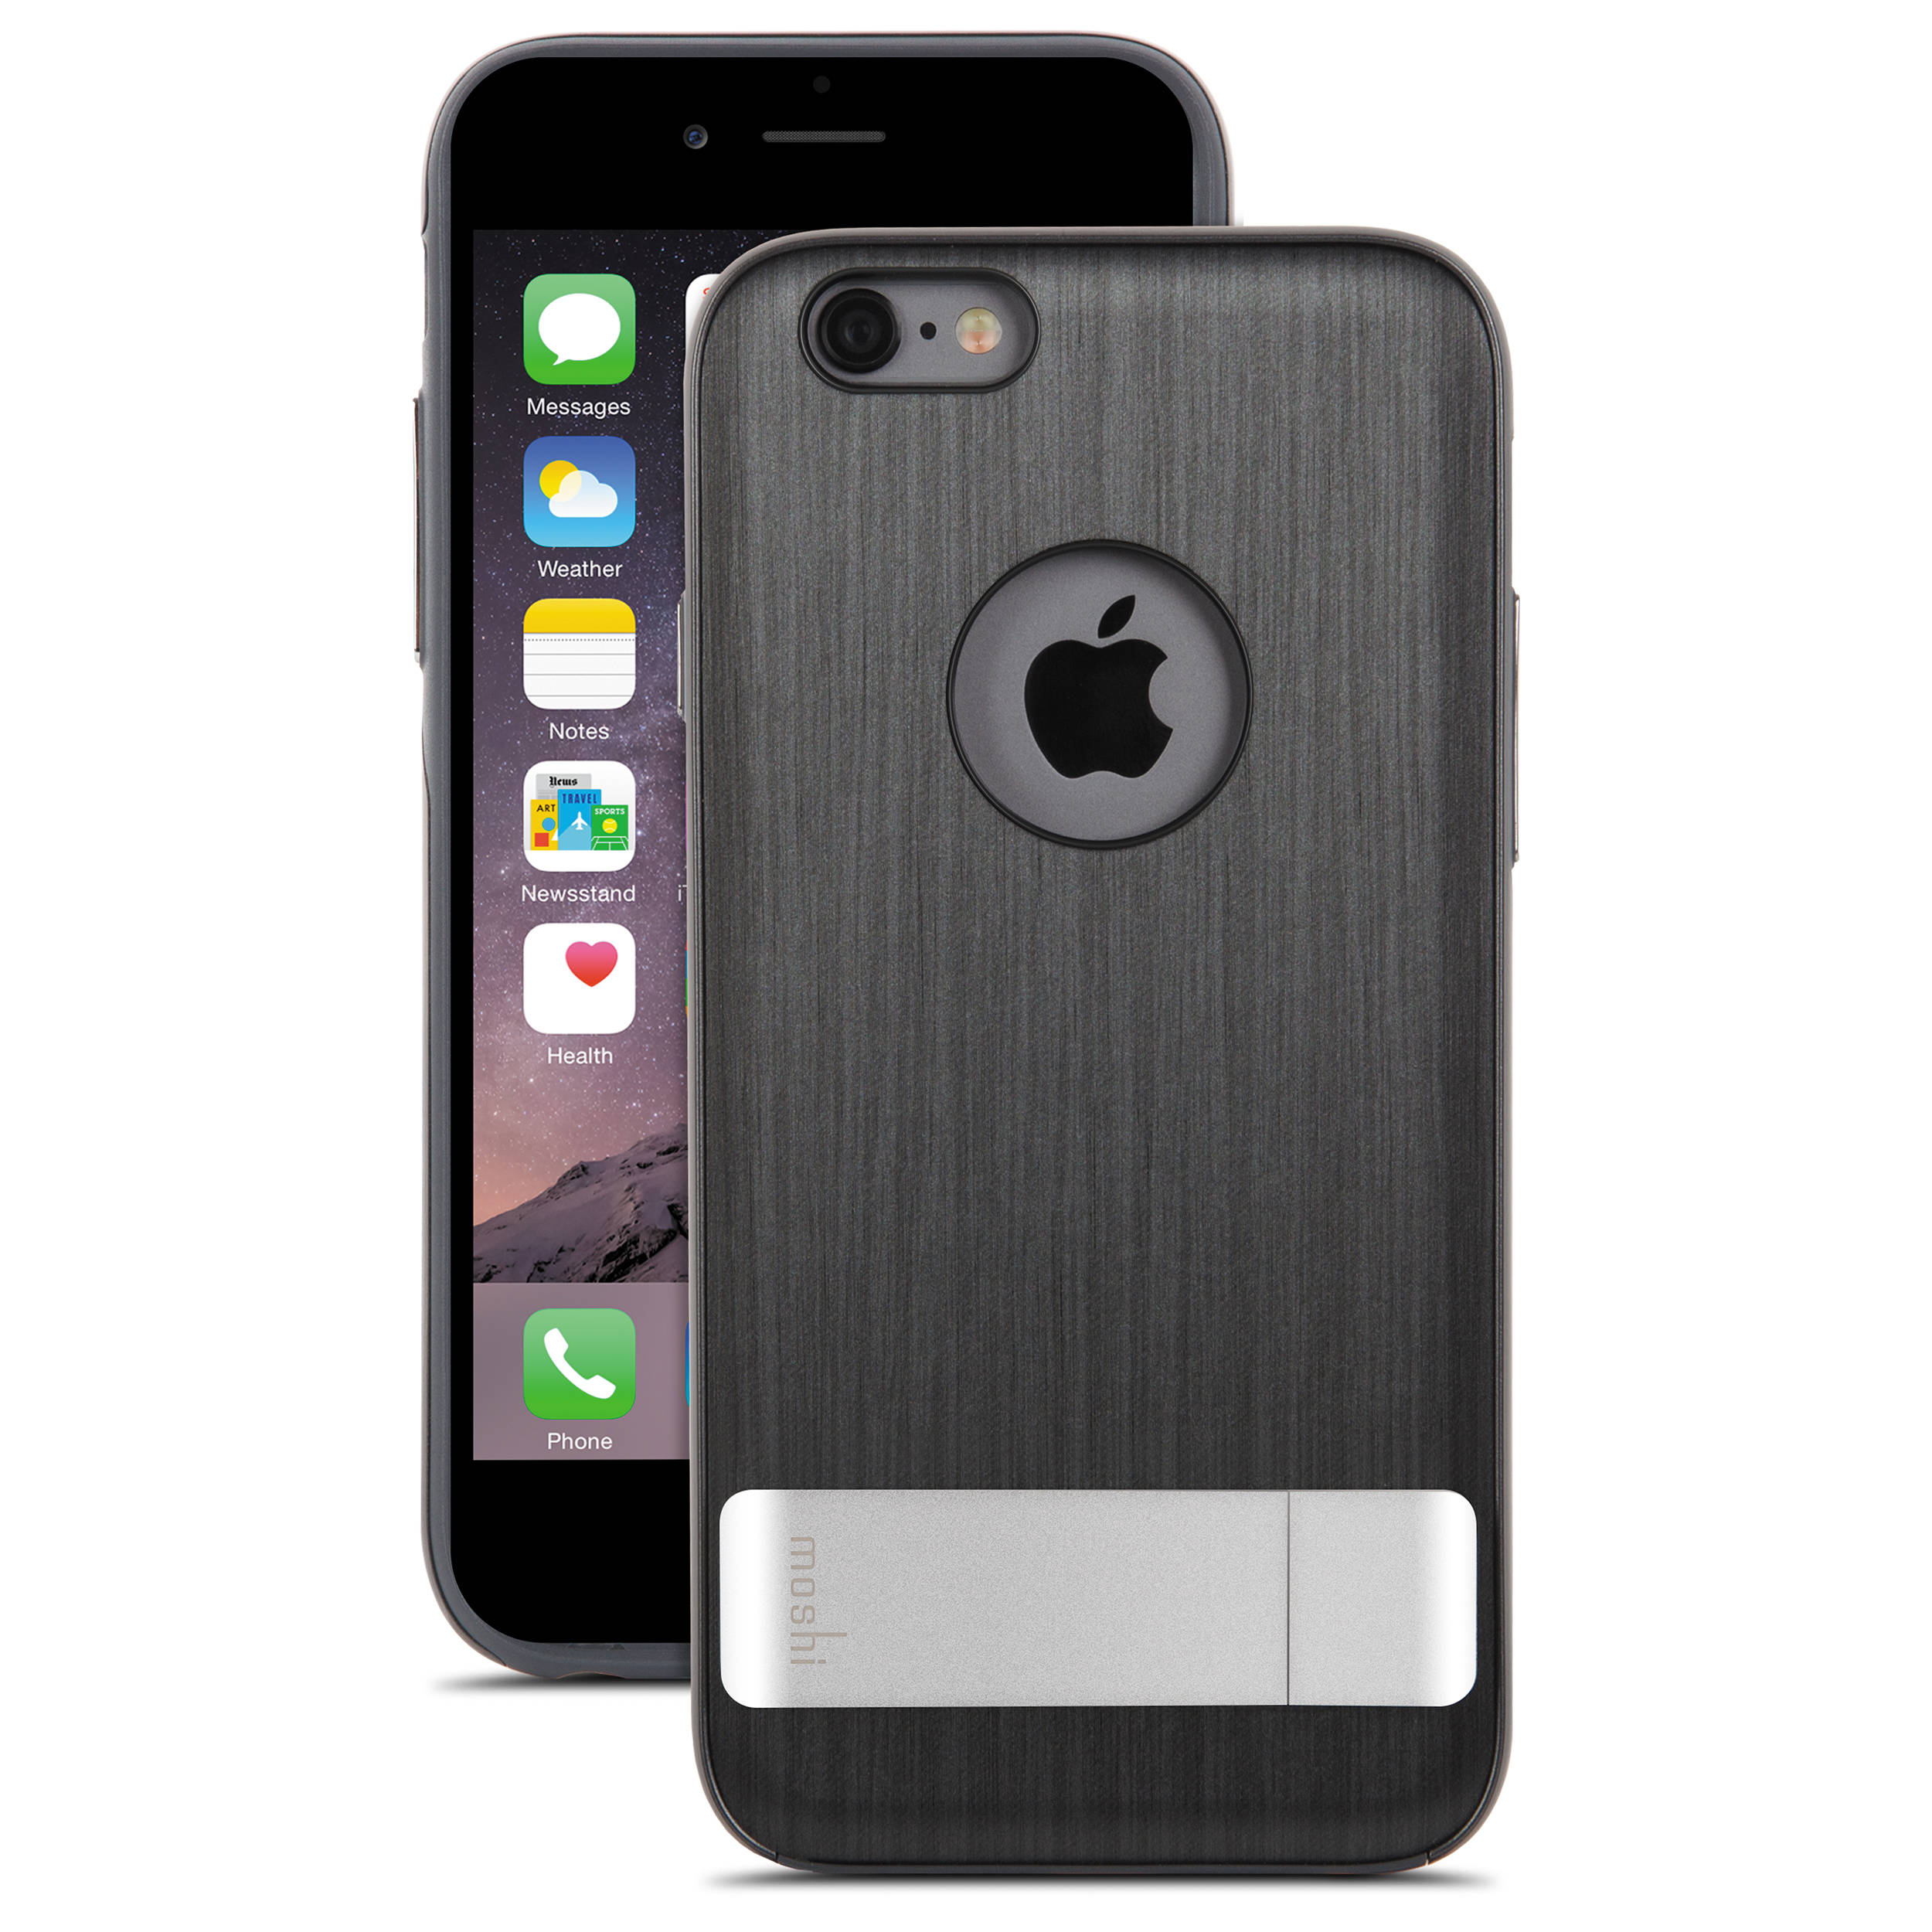 hot sale online 20e68 5f3b3 Moshi Kameleon Case for iPhone 6 Plus/6s Plus 99MO080022 B&H